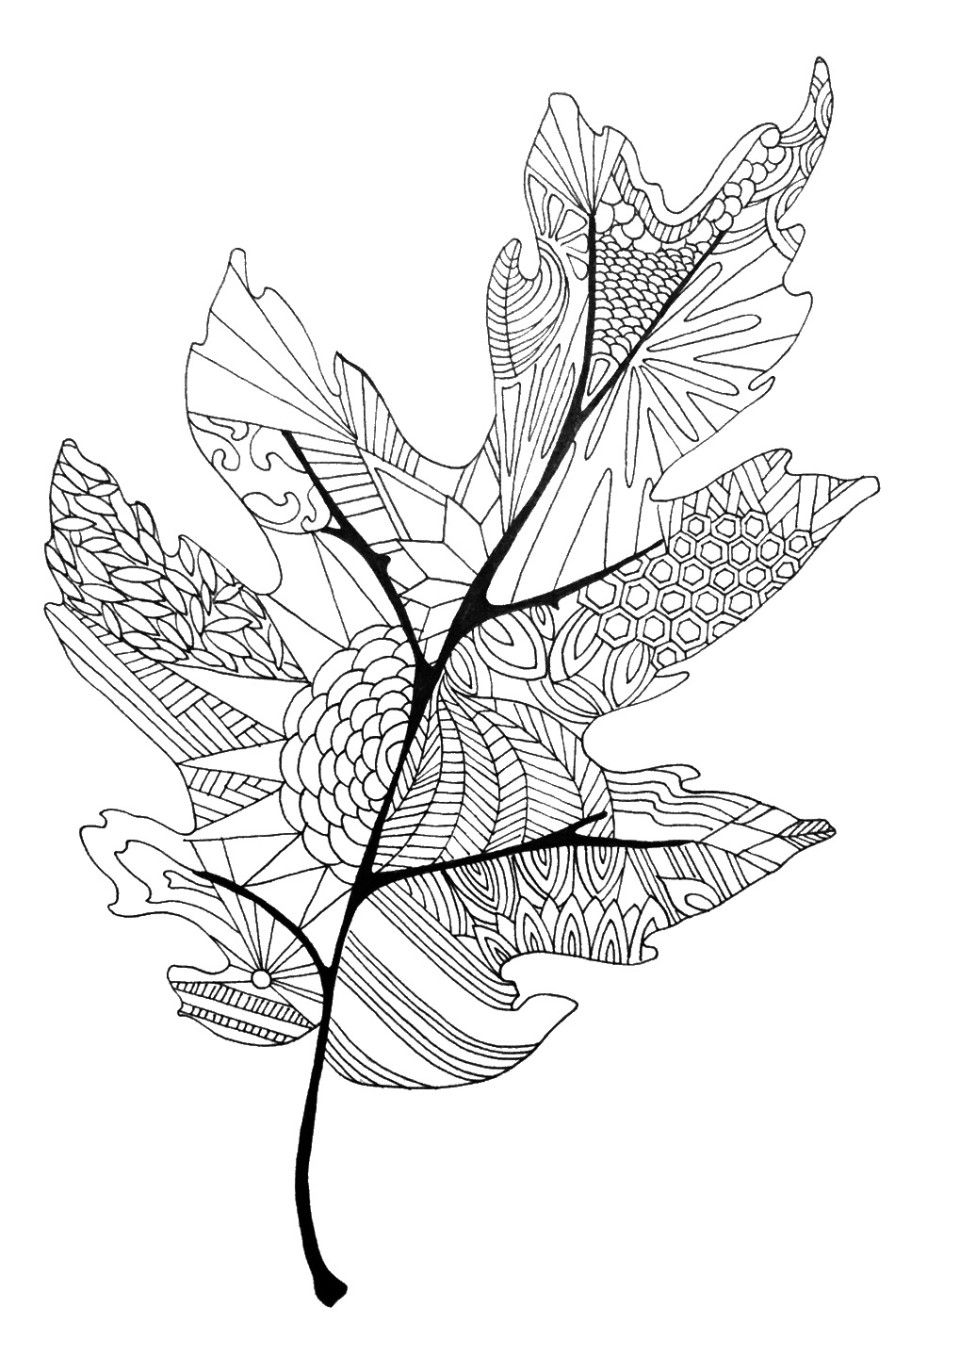 Coloring In The Lines Fall Leaves Coloring Pages Fall Coloring